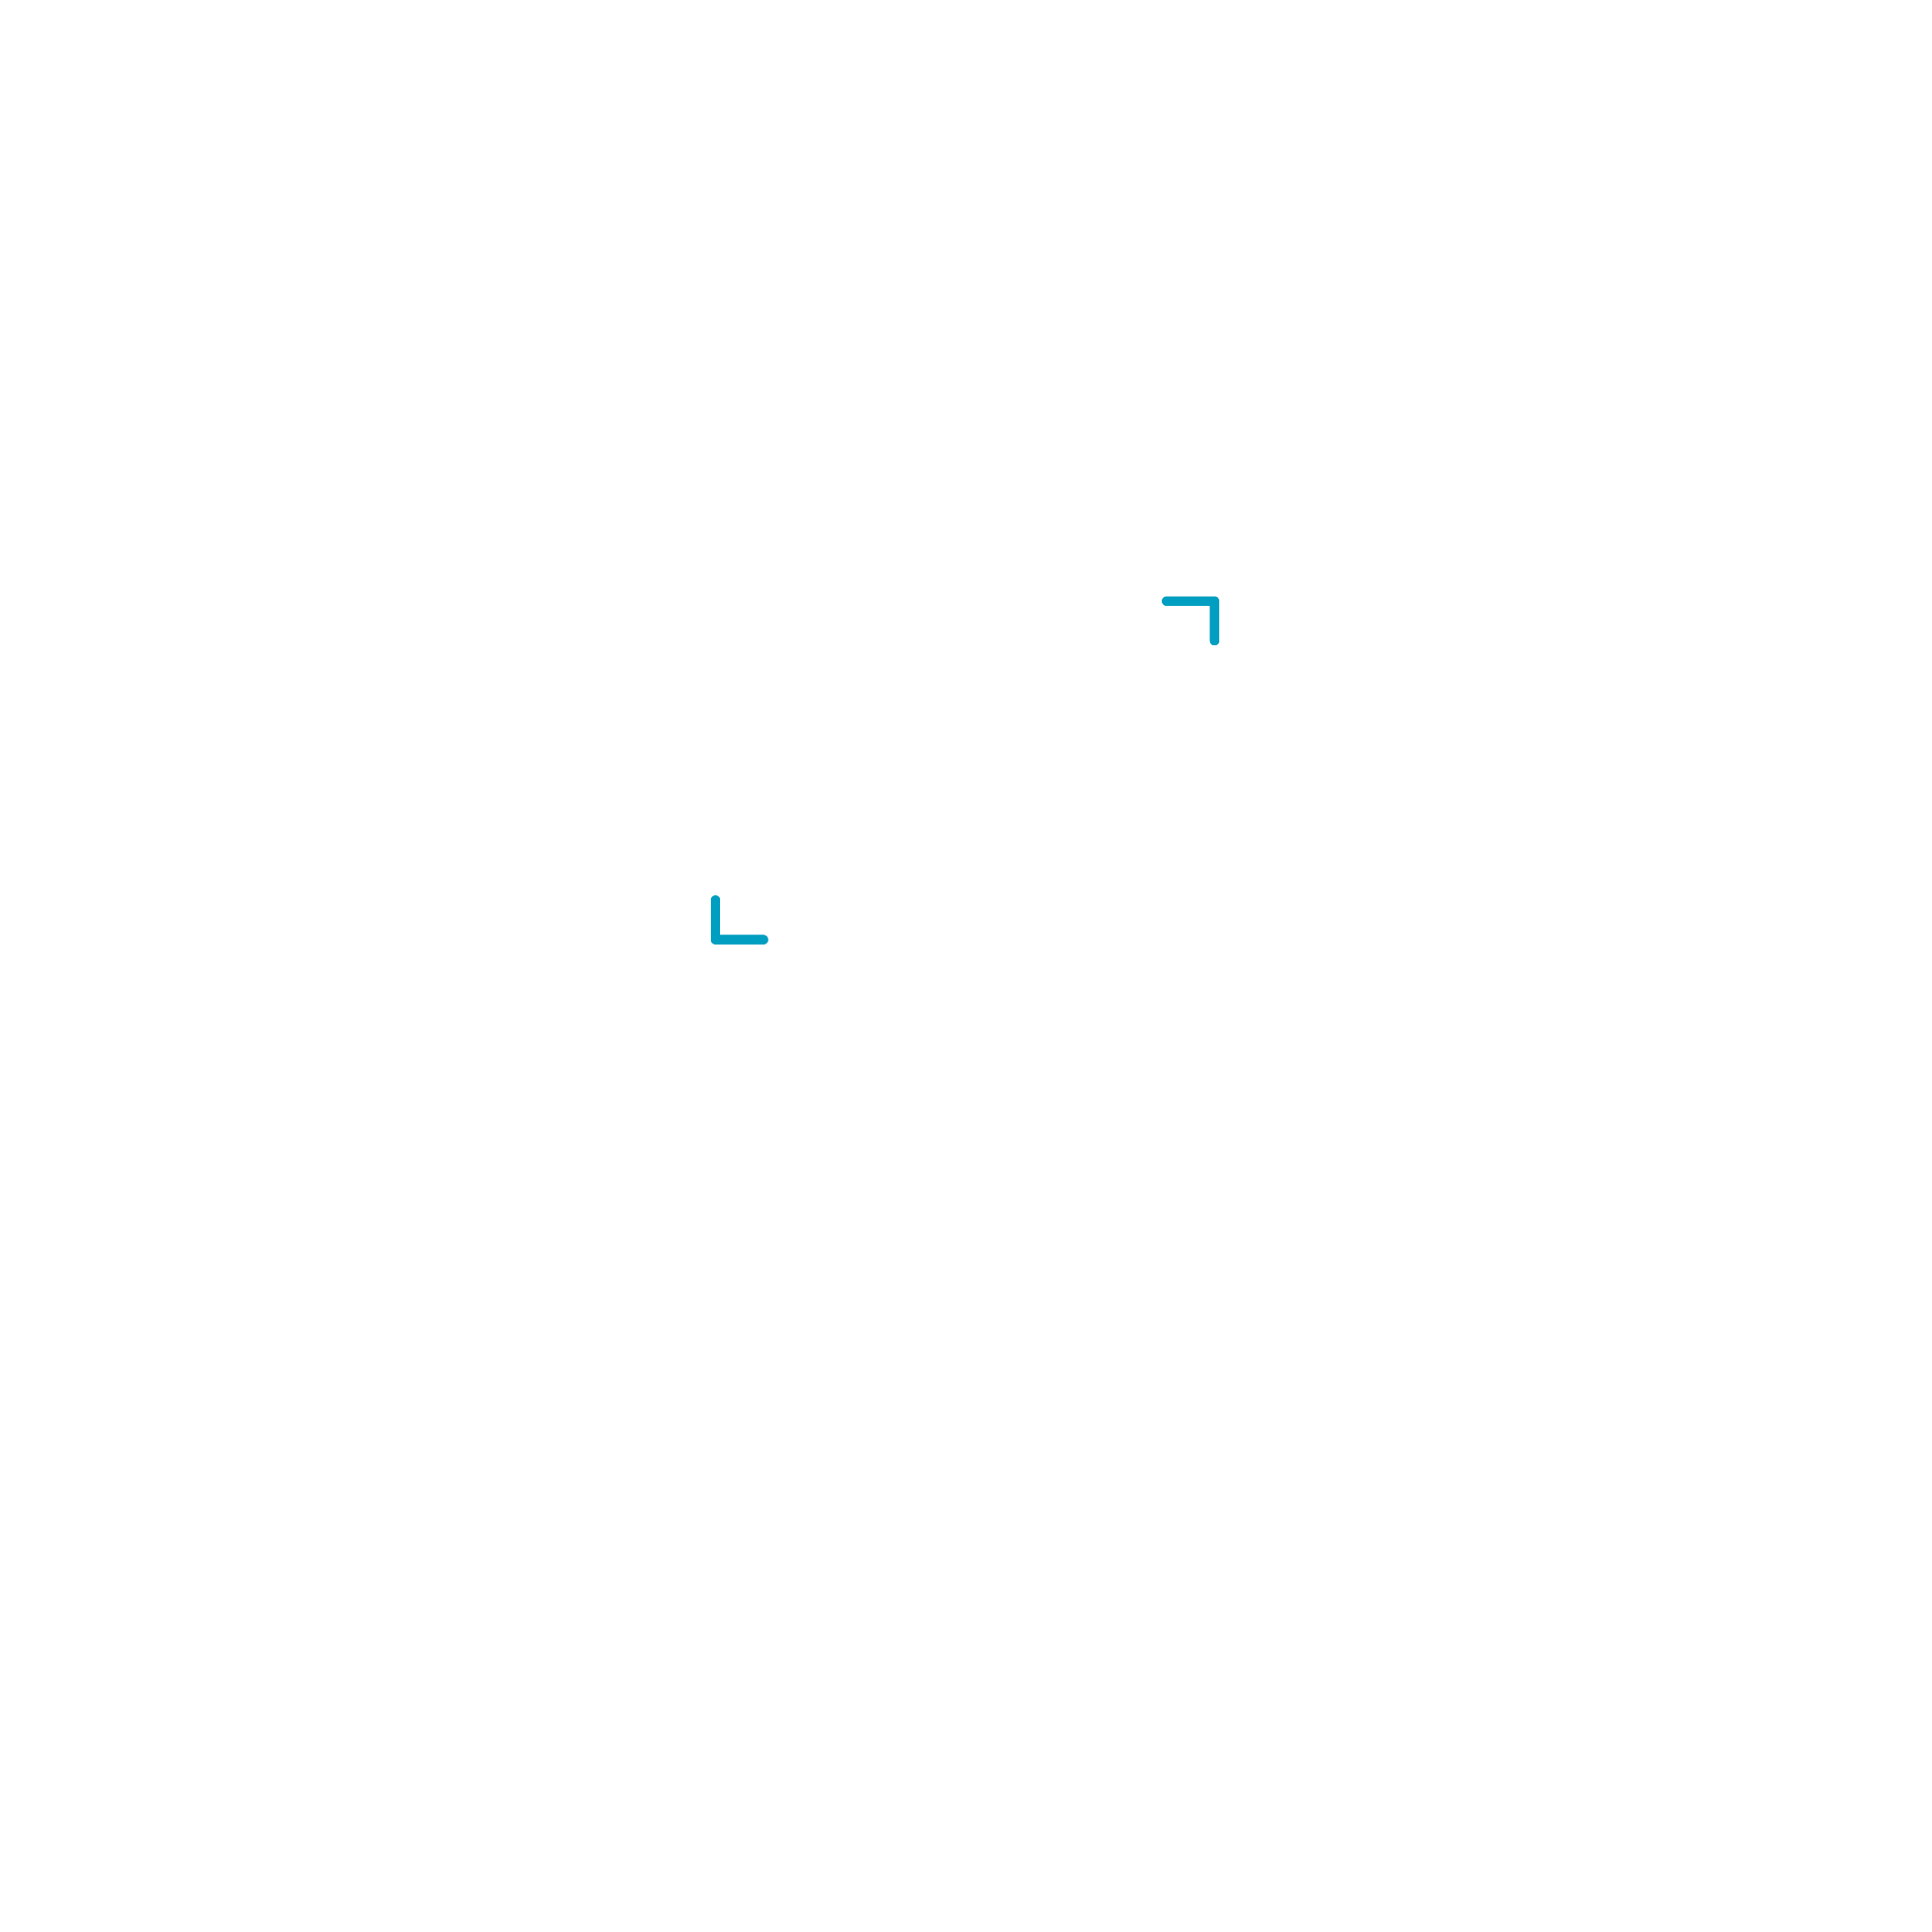 Stefan Kotze Photography